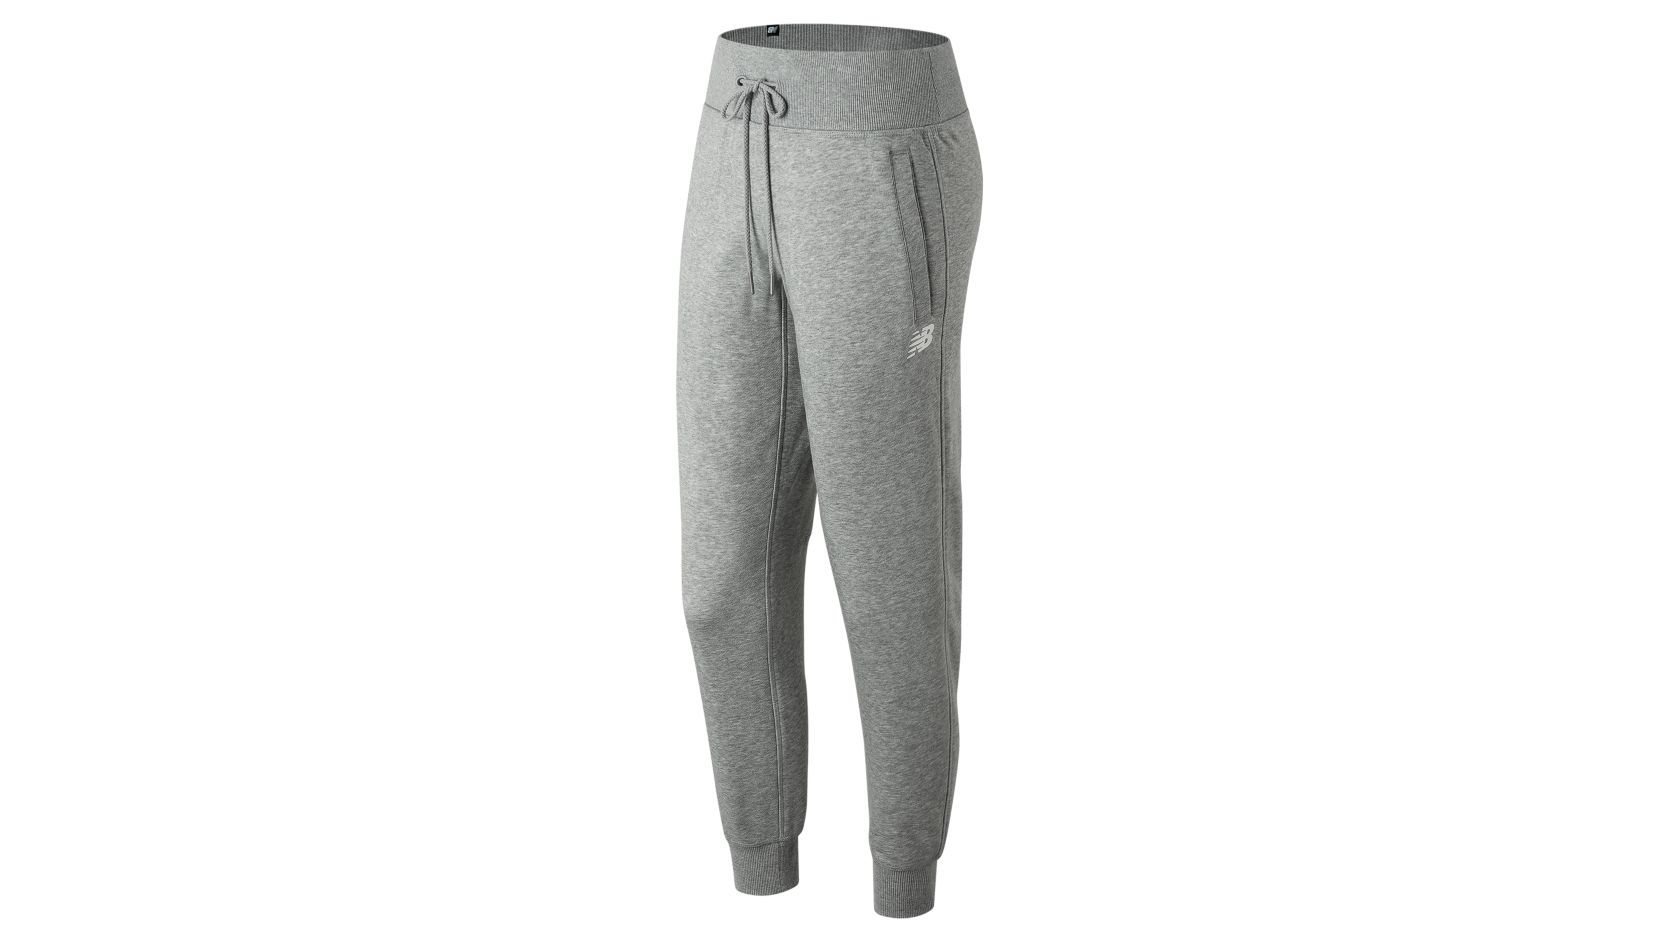 Фото #1: ESSENTIALS SWEATPANT